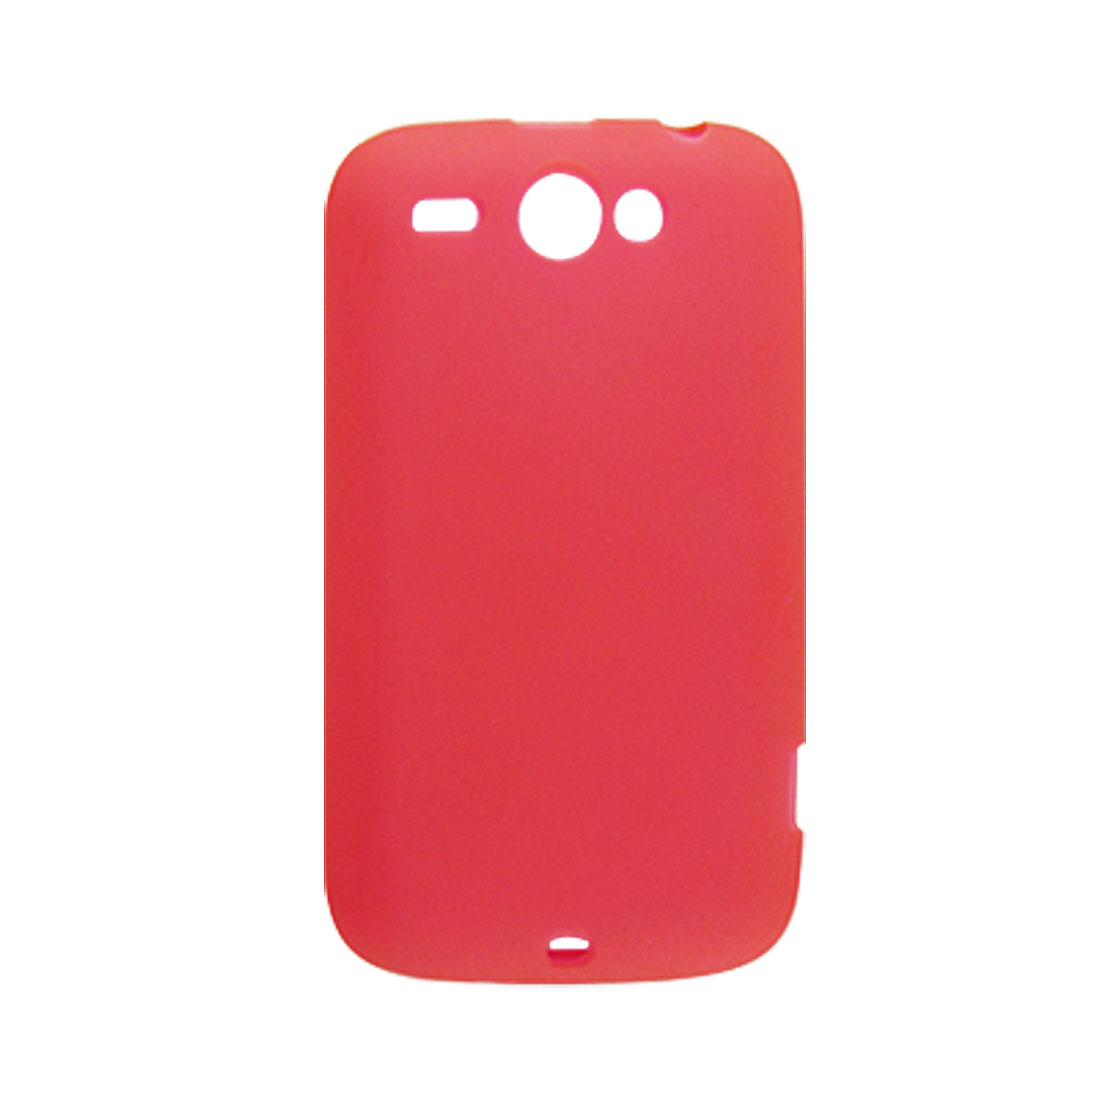 Protective Soft Plastic Shell Case Red for HTC Wildfire G8